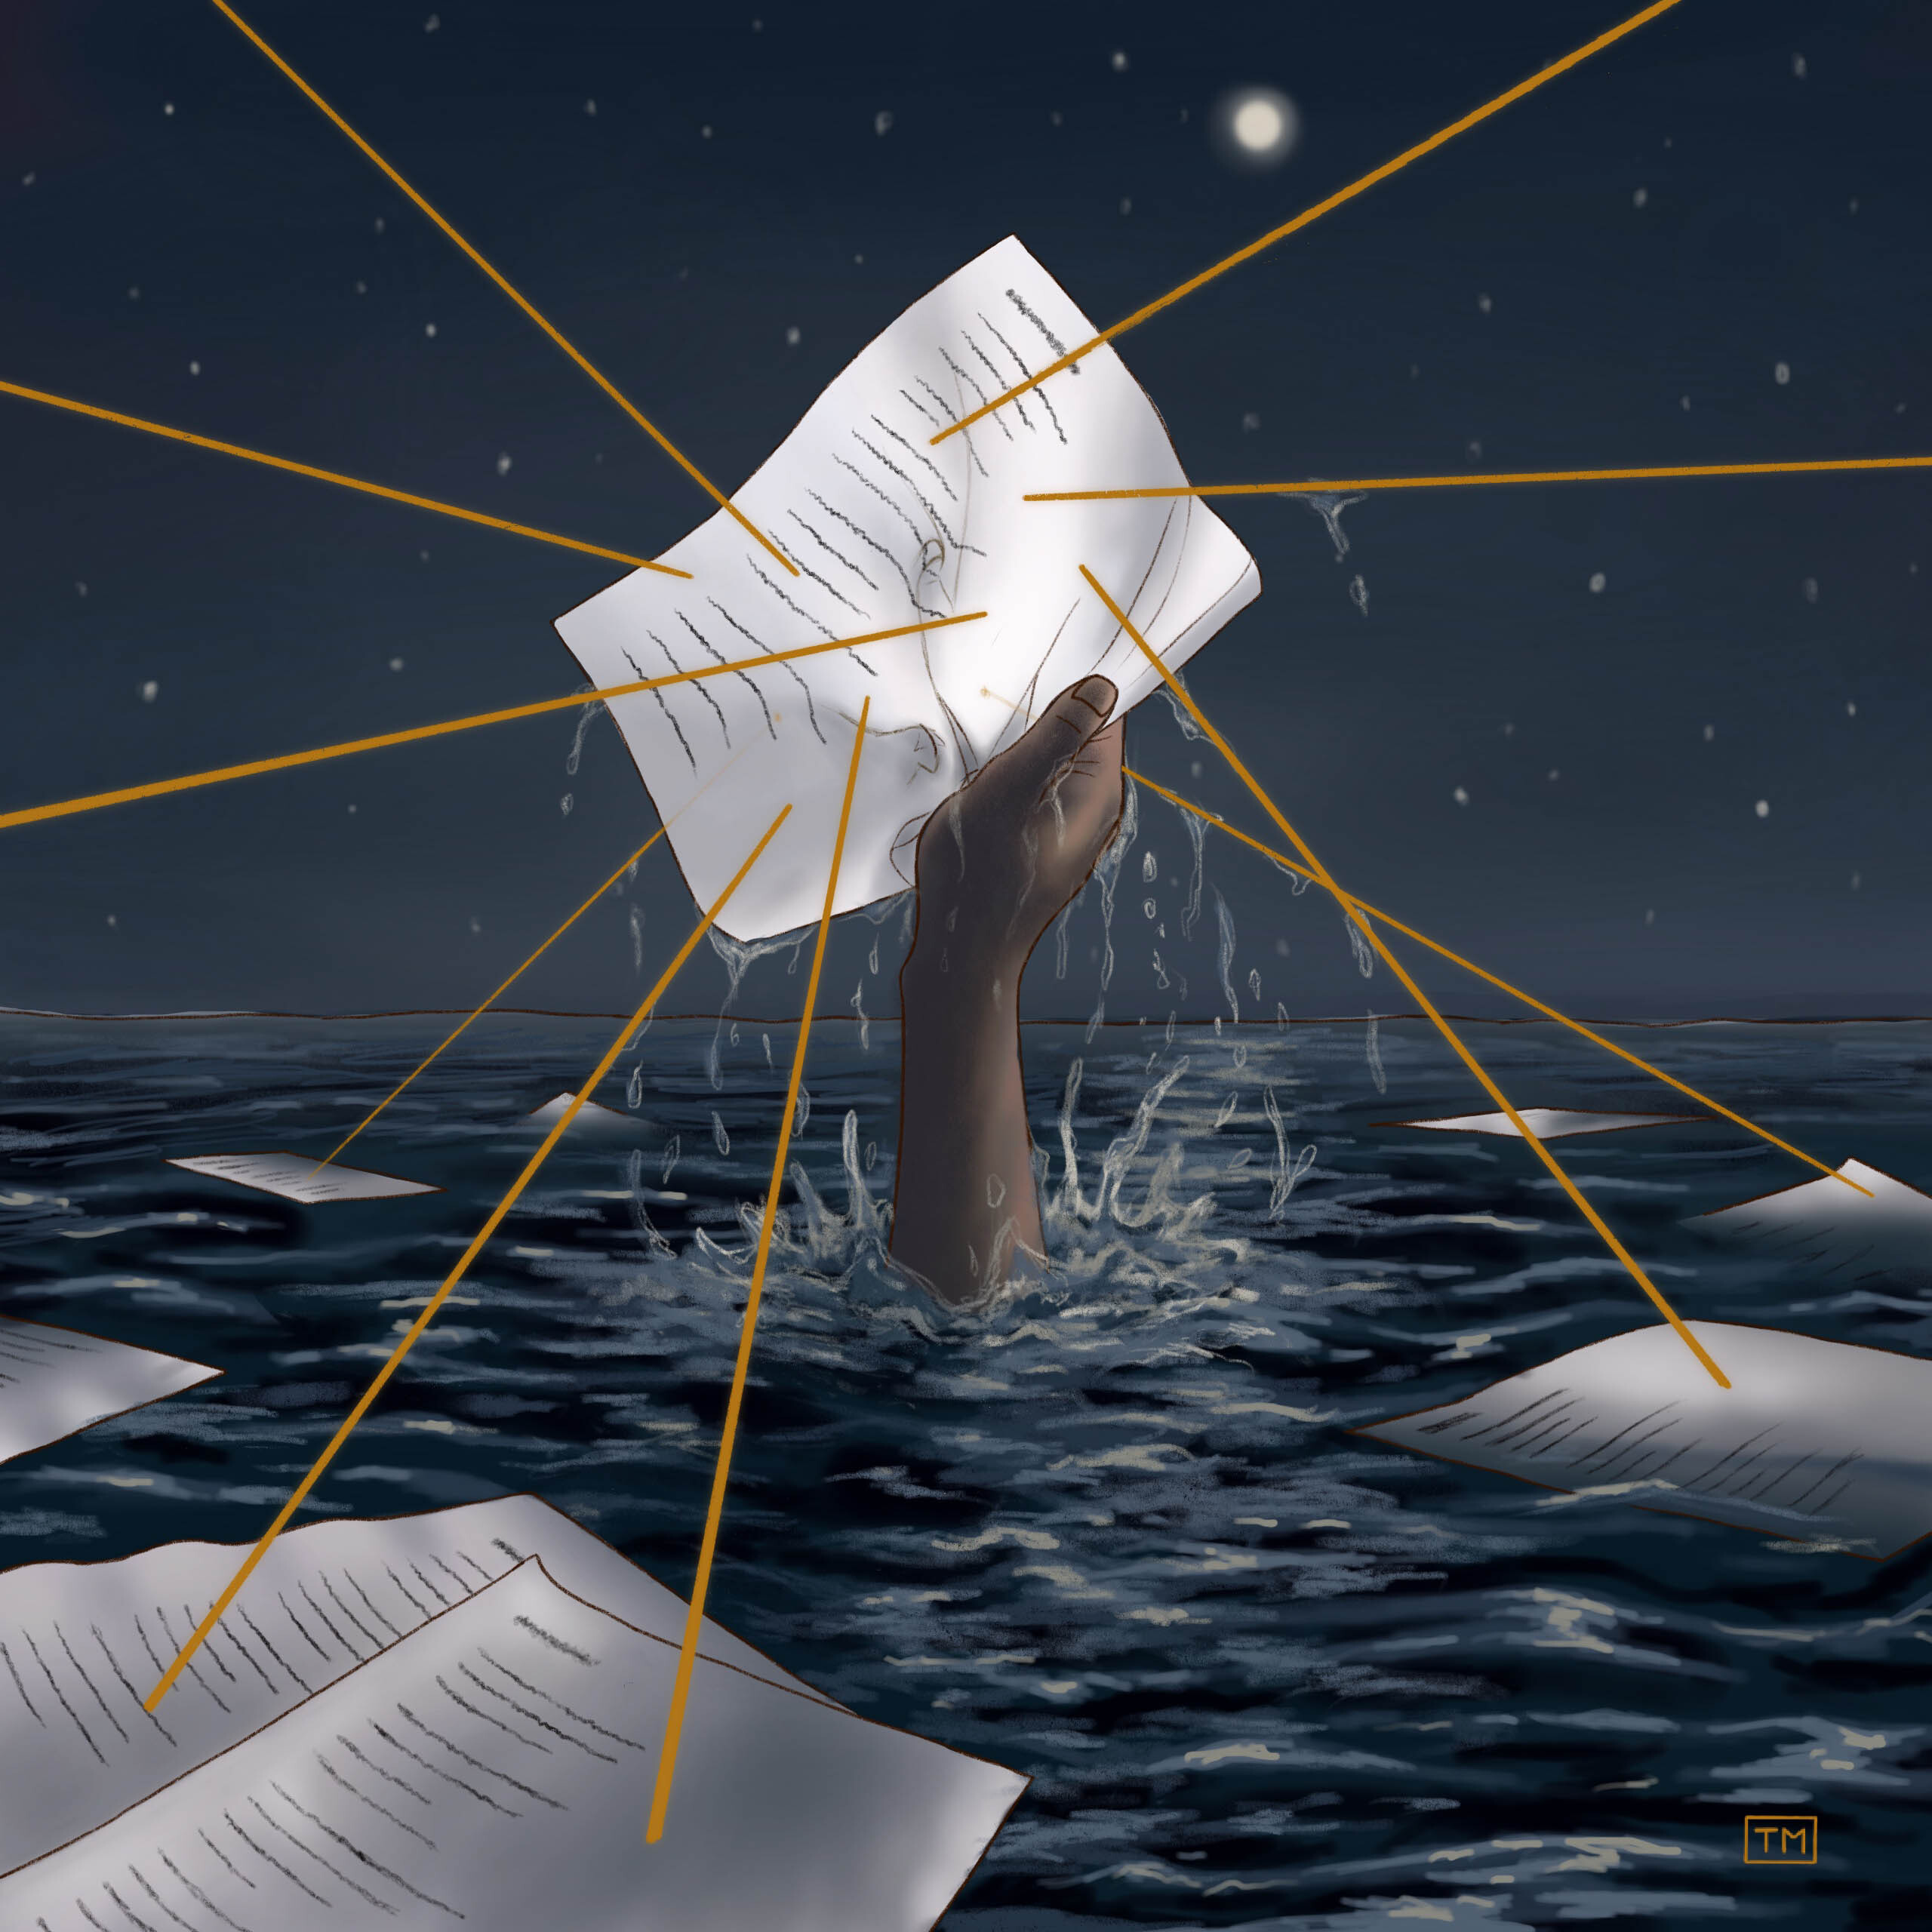 A hand thrusting up through the surface of dark water cluching a story printed on paper.